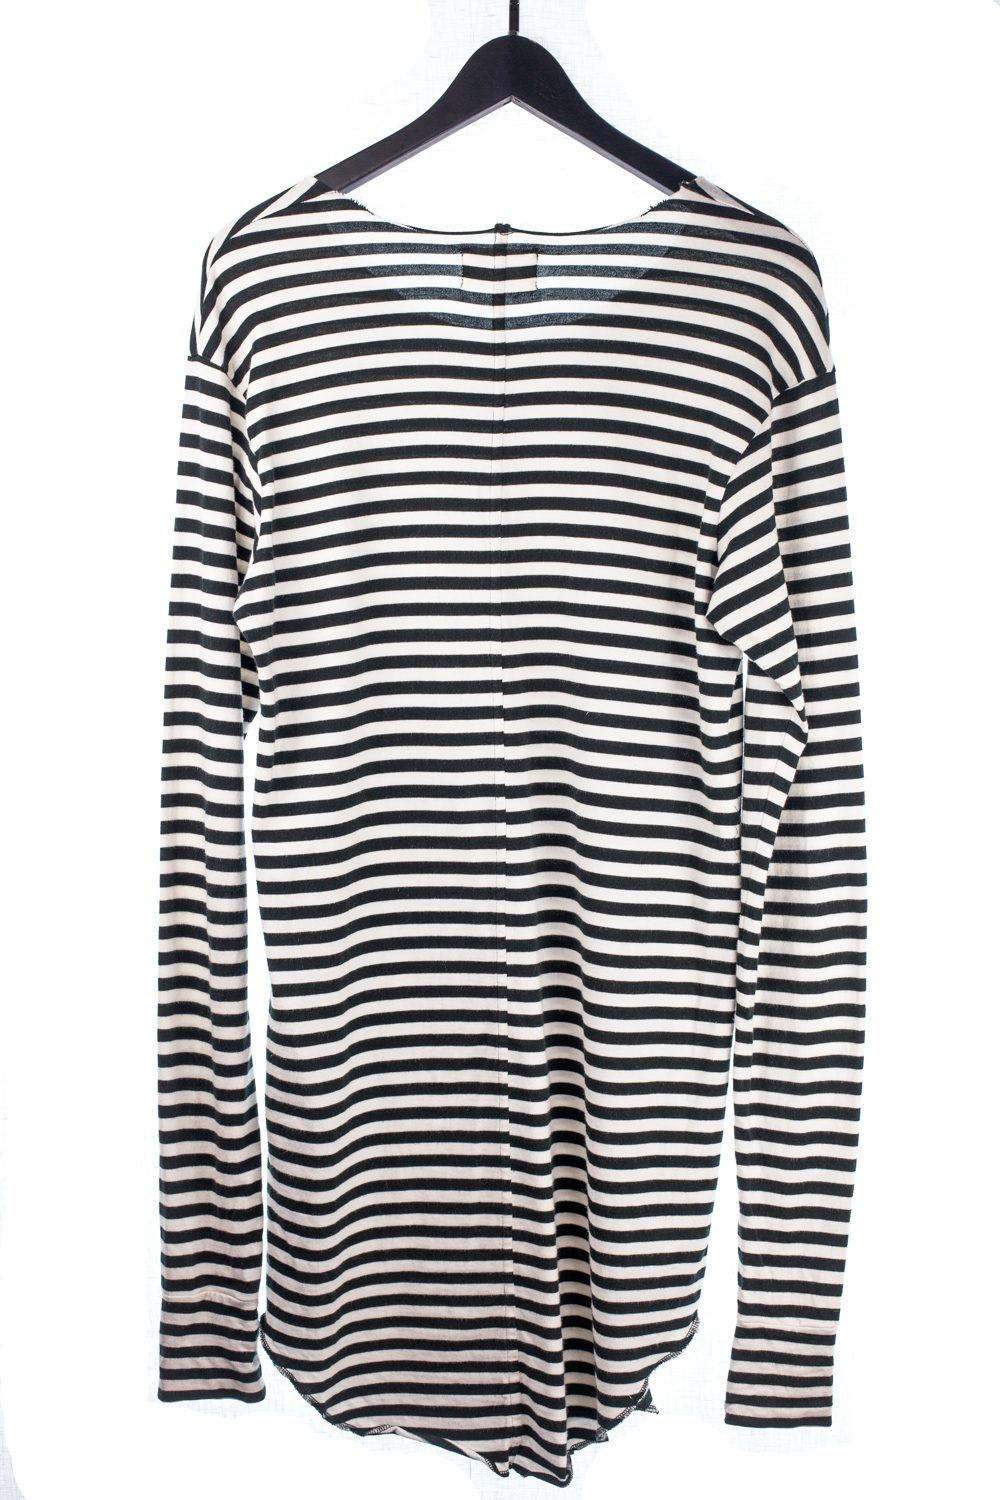 Third Collection Striped LongSleeve